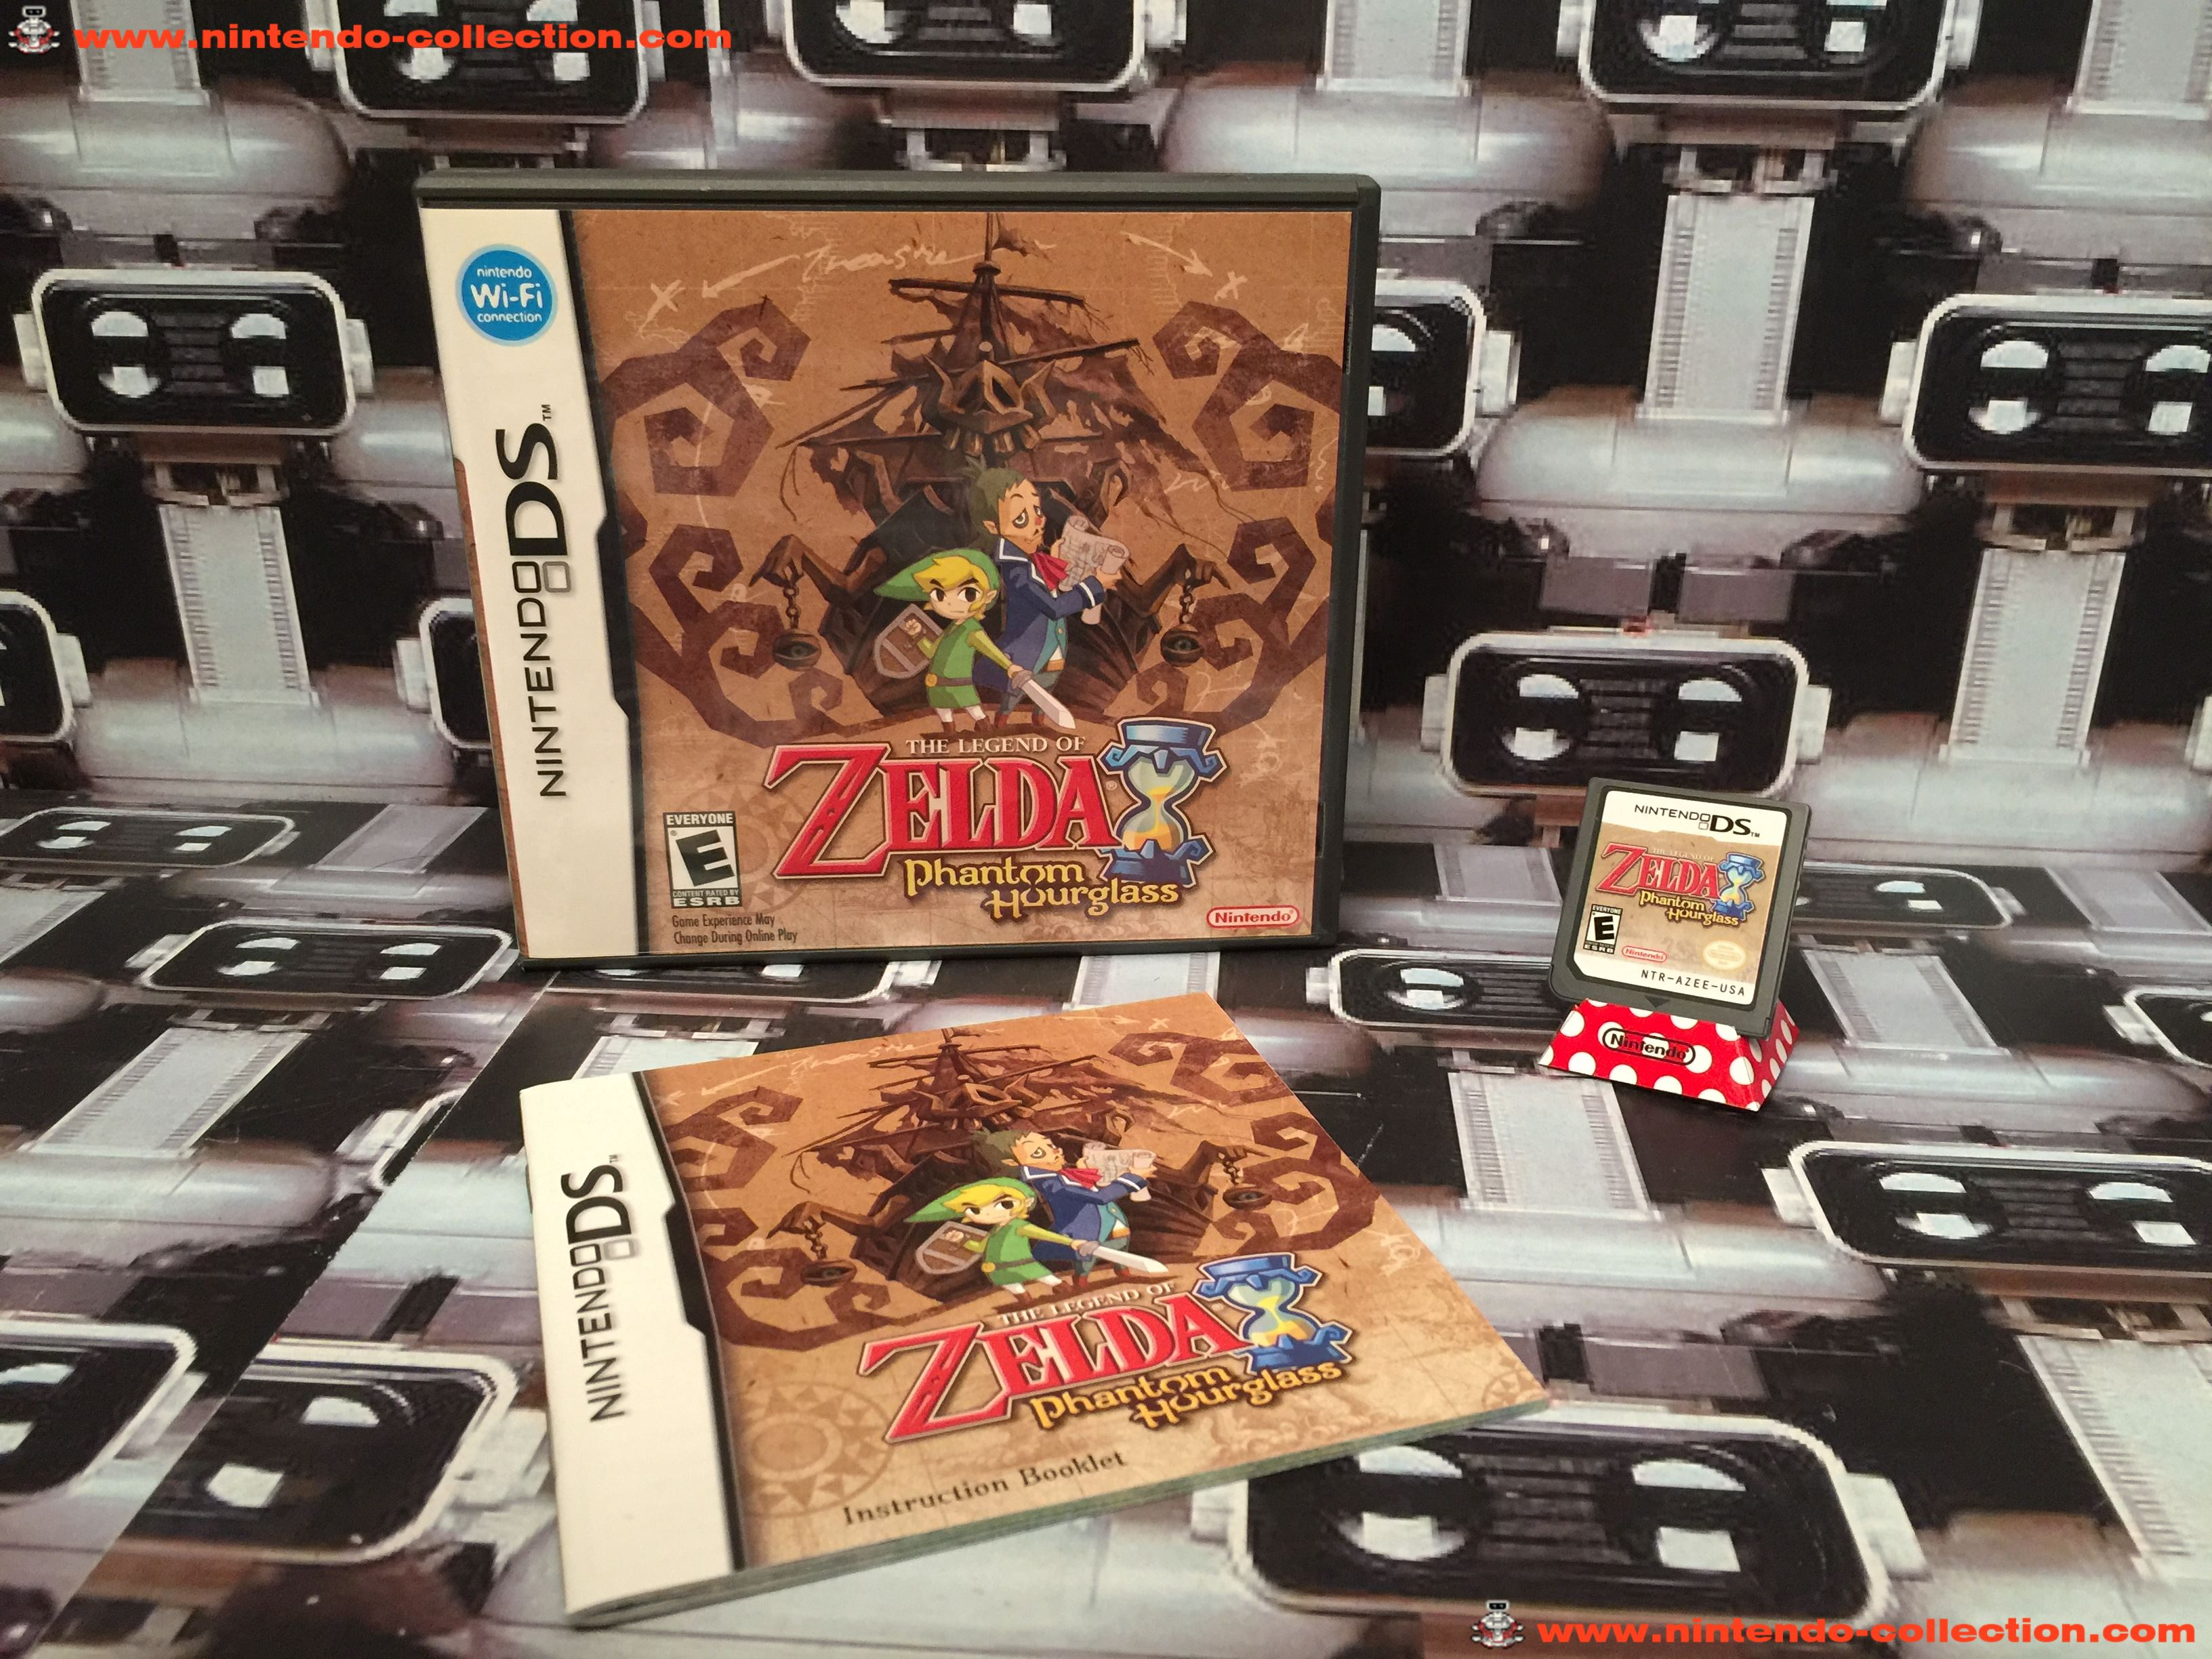 www.nintendo-collection.com - Nintendo DS Jeux Game The Legende of Zelda Phantom Hourglass US